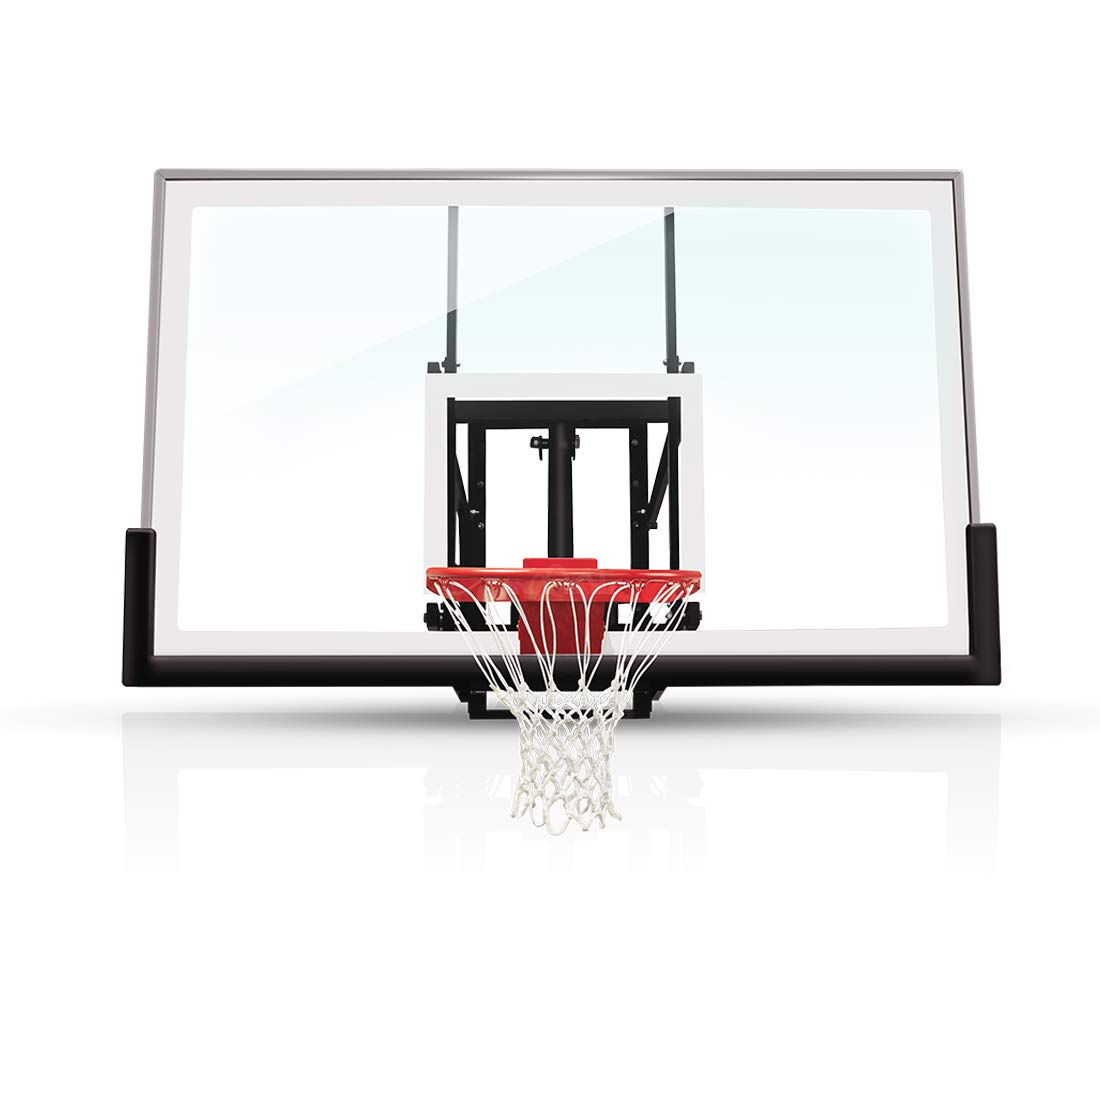 "katop 60"" 72"" Wall Moundted Basketball Goal Hoop with a High-Performance Tempered Glass Backboard, Effortlessly Height Adjustable from 7.5 to 10 Feet Fit Indoor and Outdoor Wall"